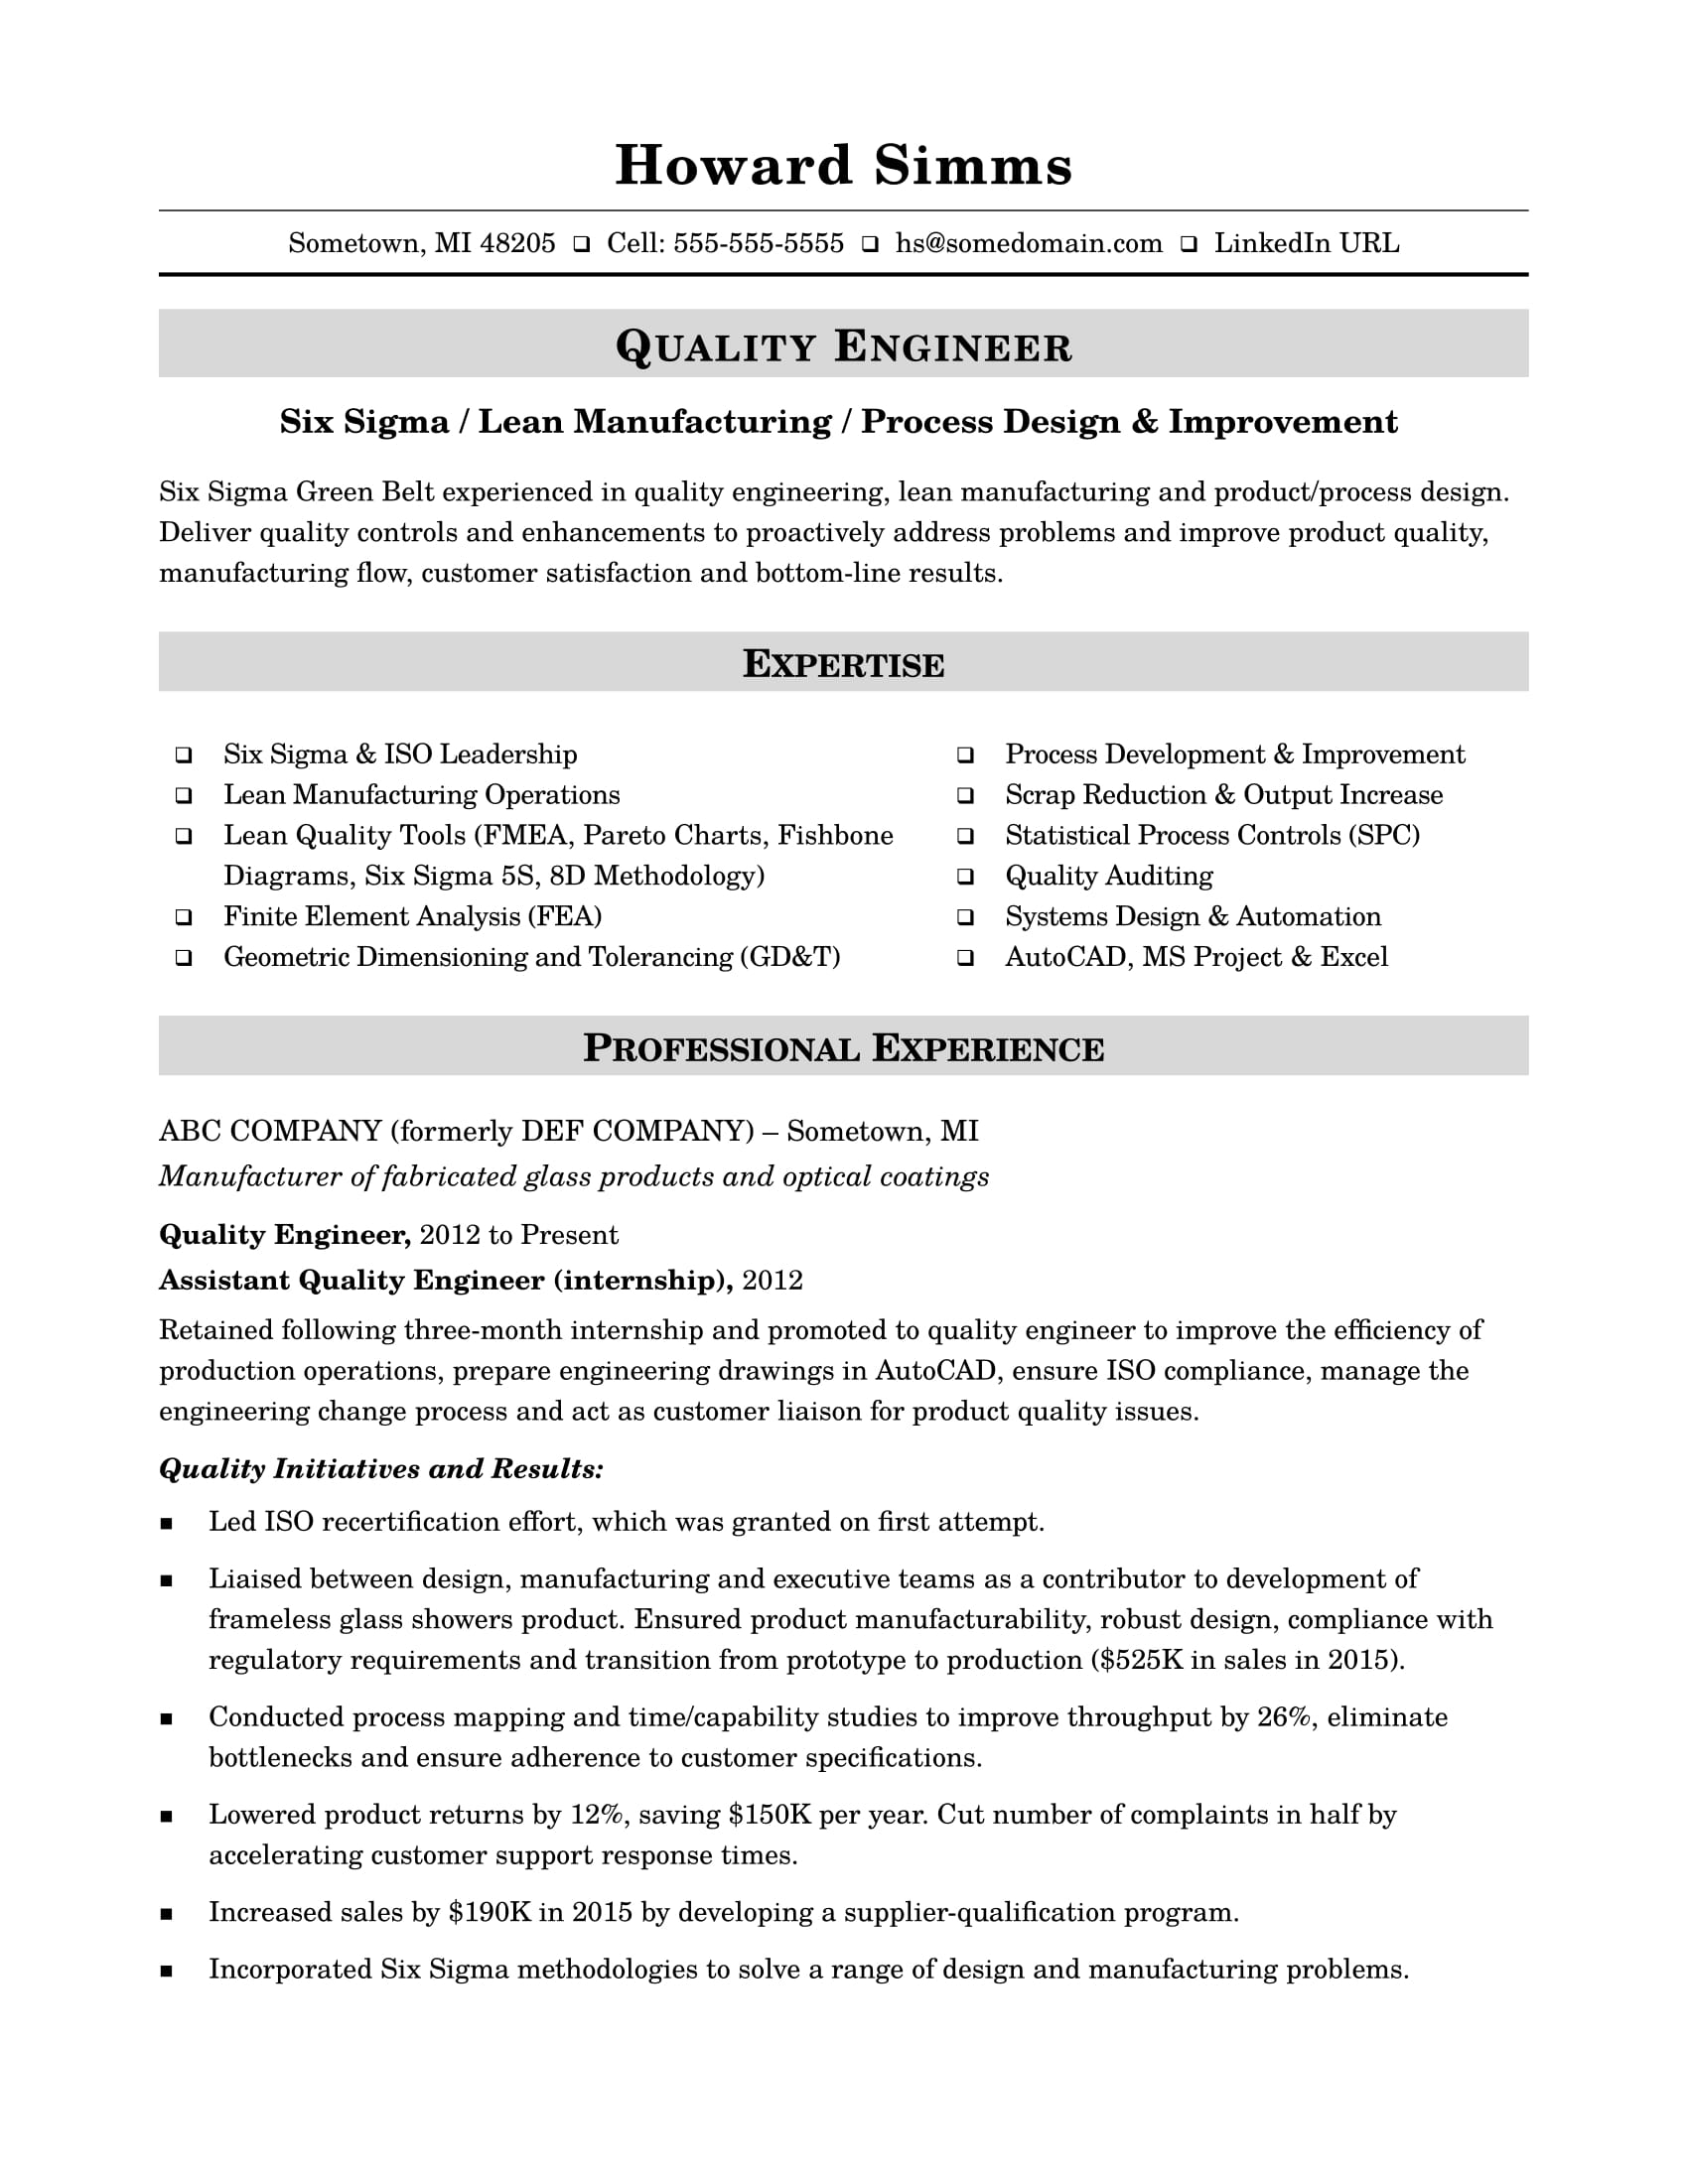 Sample Resume for a Midlevel Quality Engineer | Monster.com